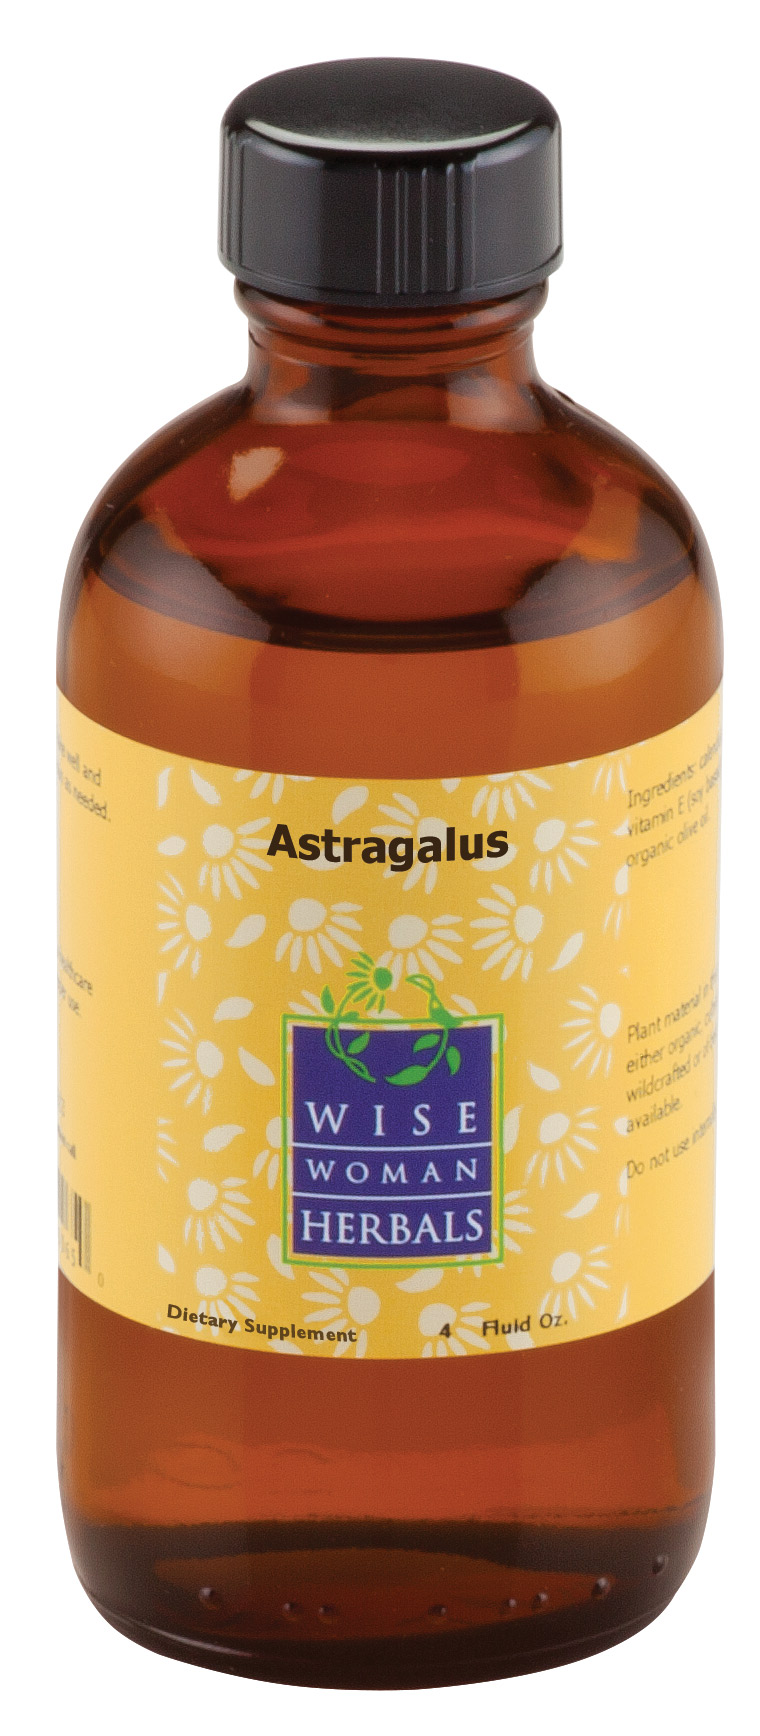 Astragalus Extract (Astragalus membranaceous), 4 oz